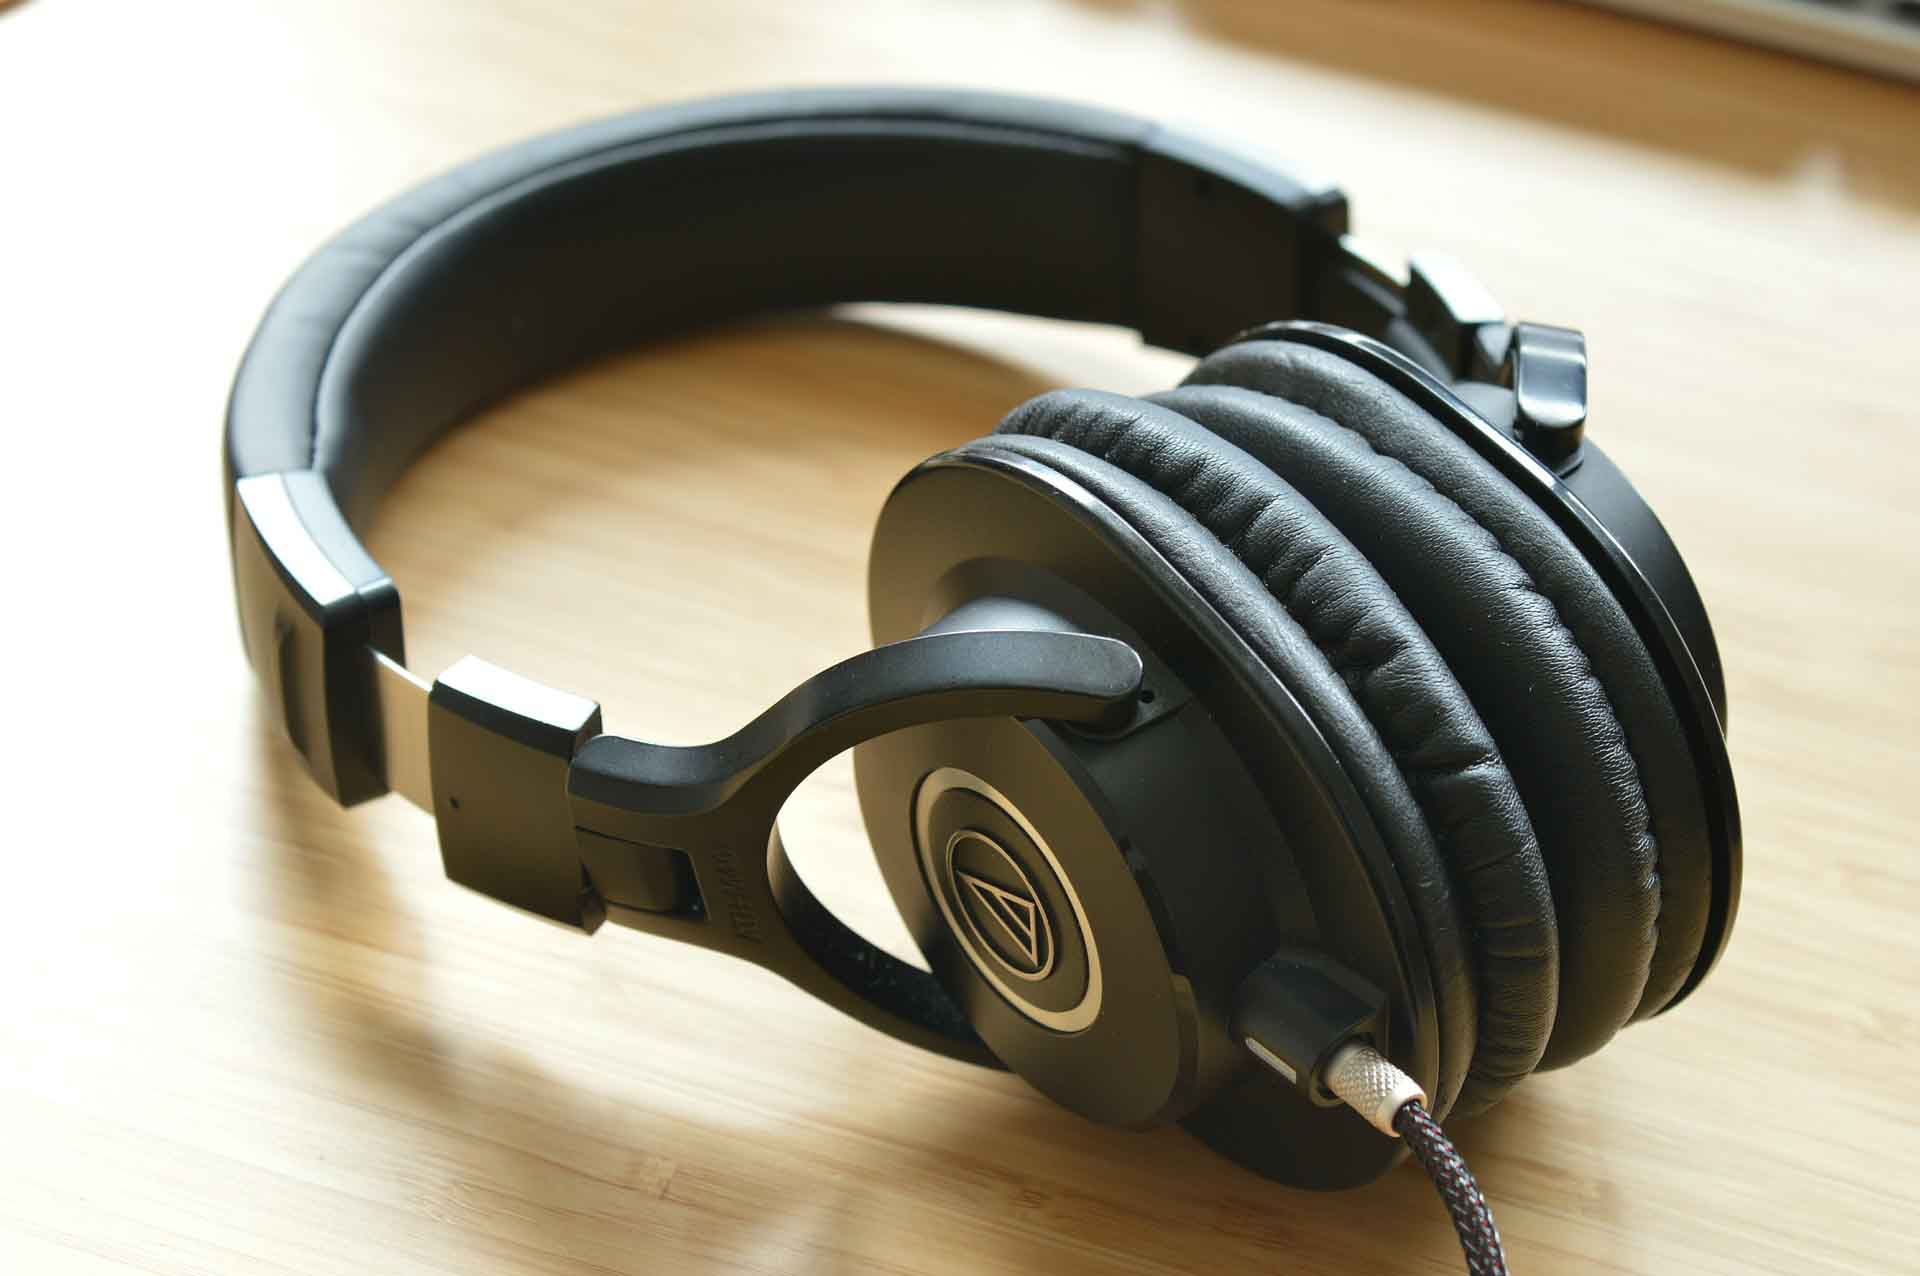 The Best Studio Headphones for Home Recording in 2018